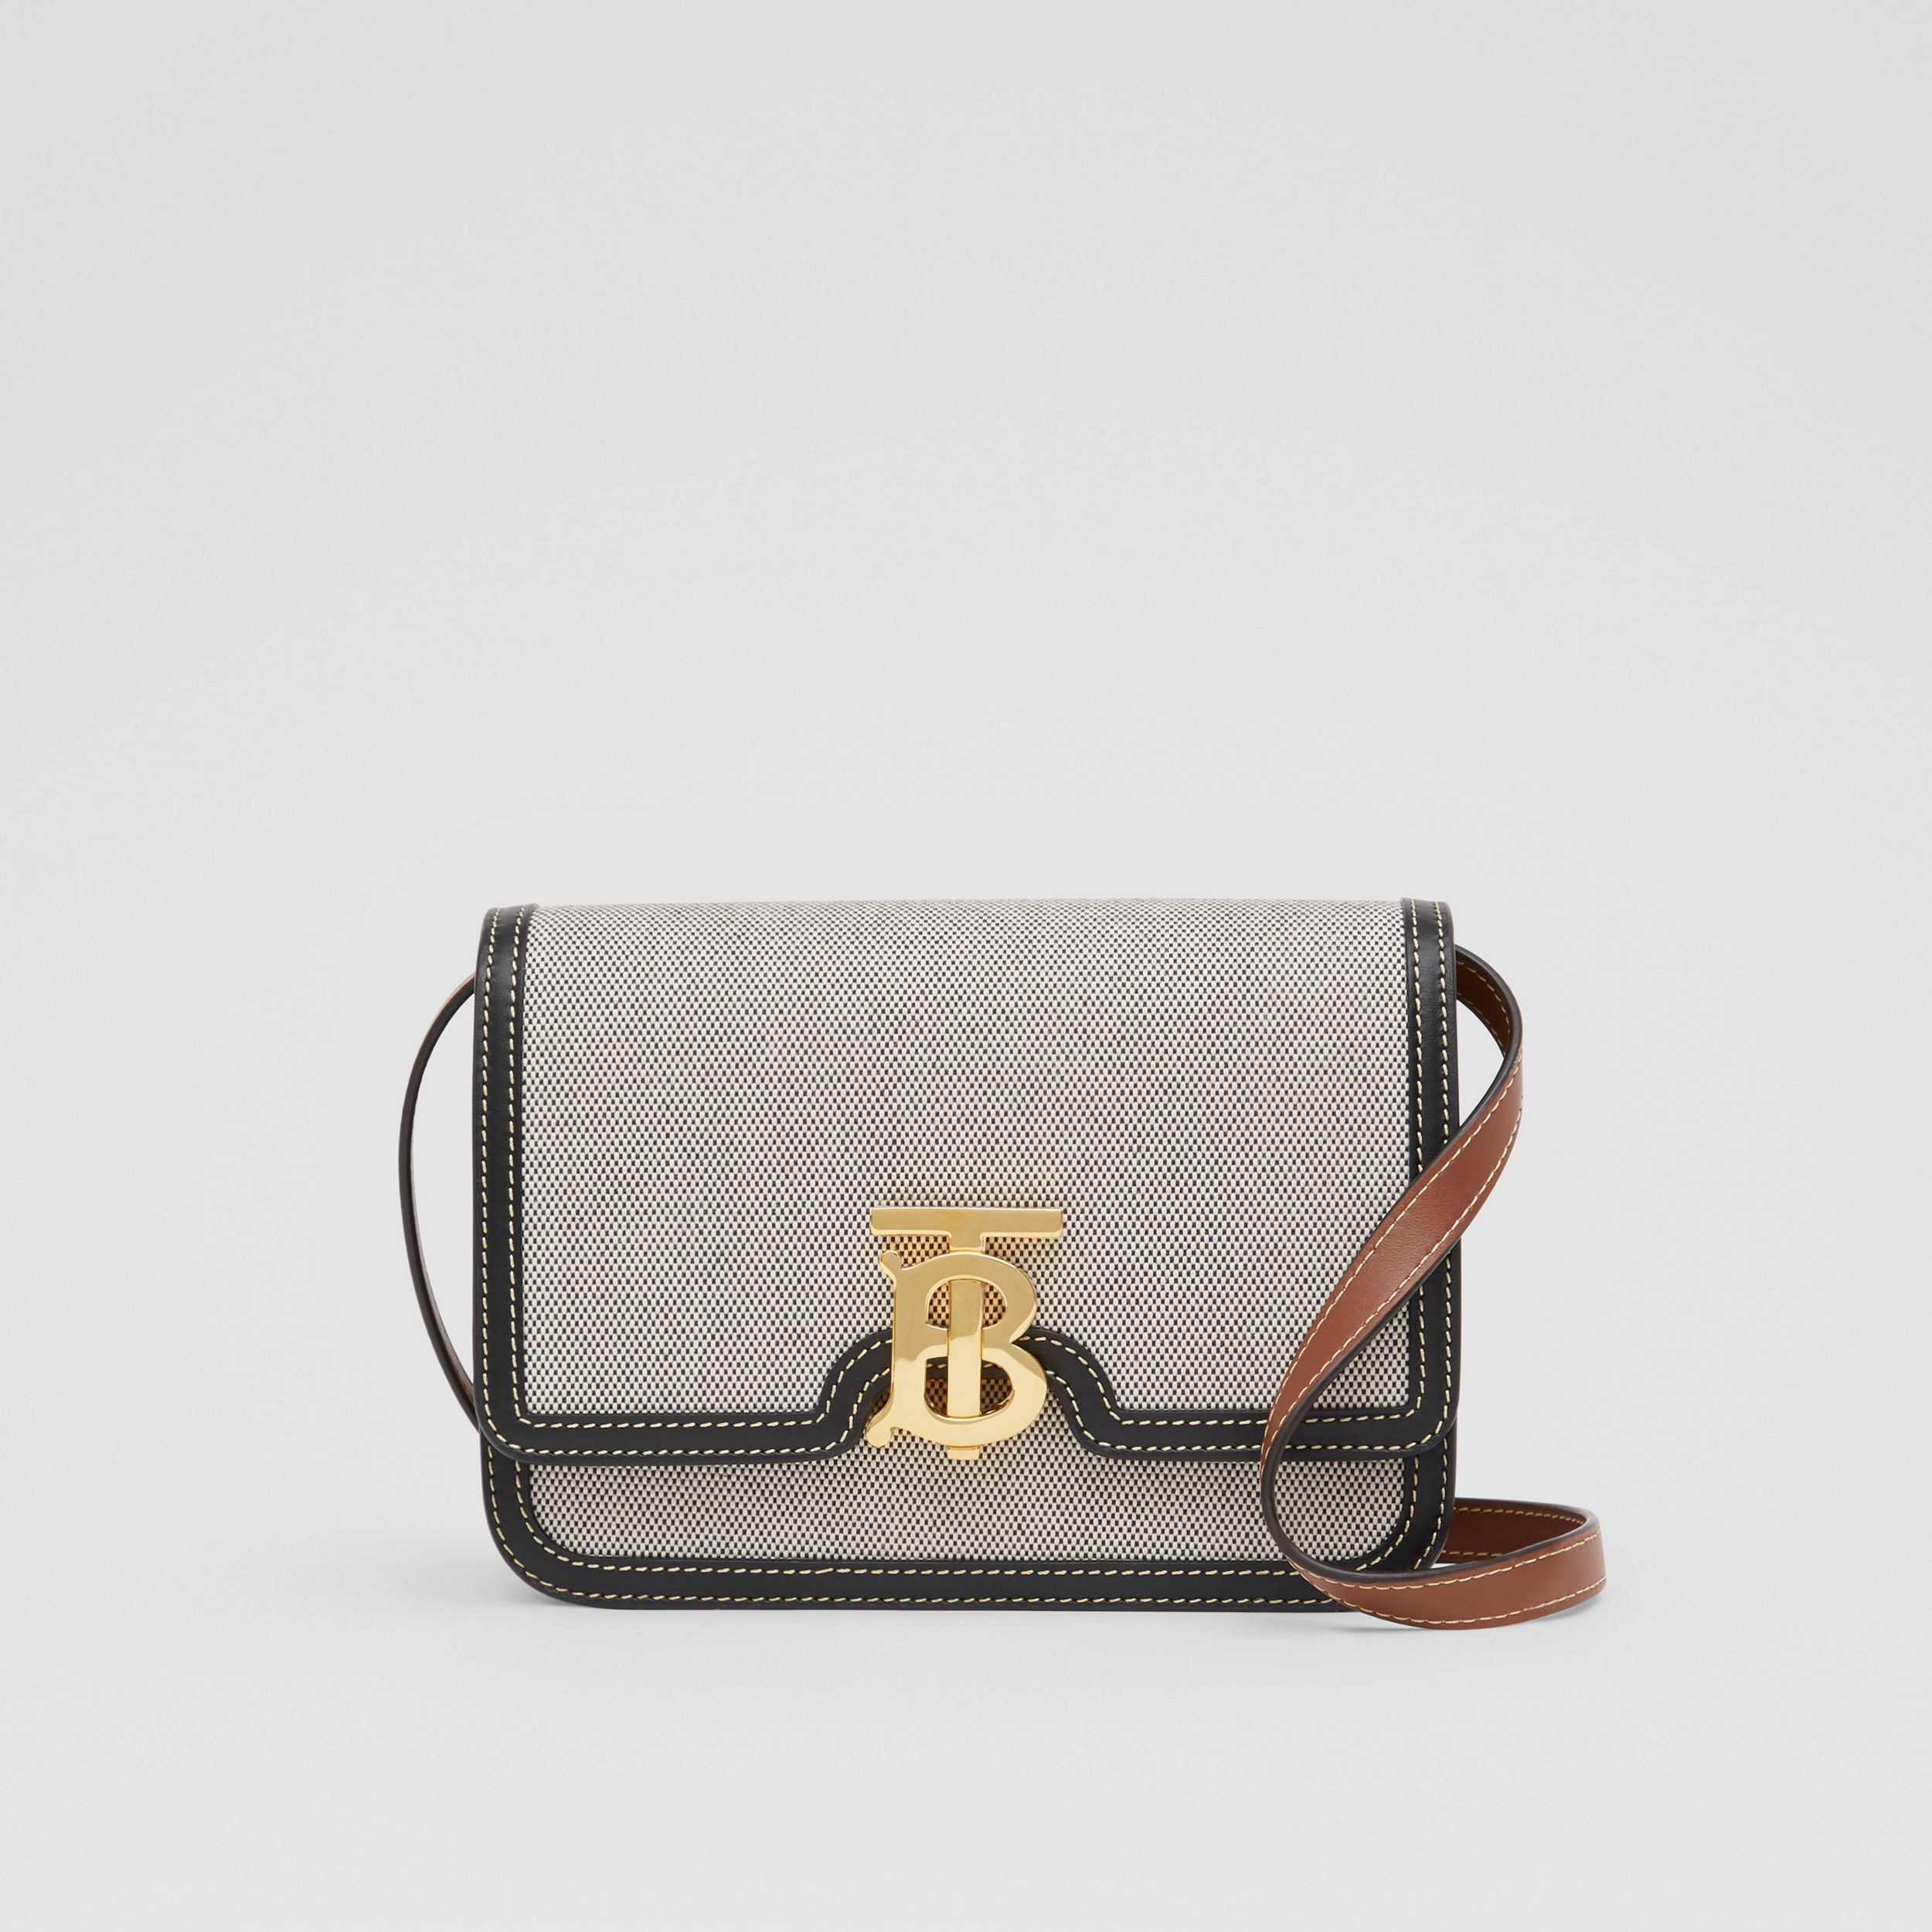 Small Tri-tone Canvas and Leather TB Bag in Black/tan - Women | Burberry - 1